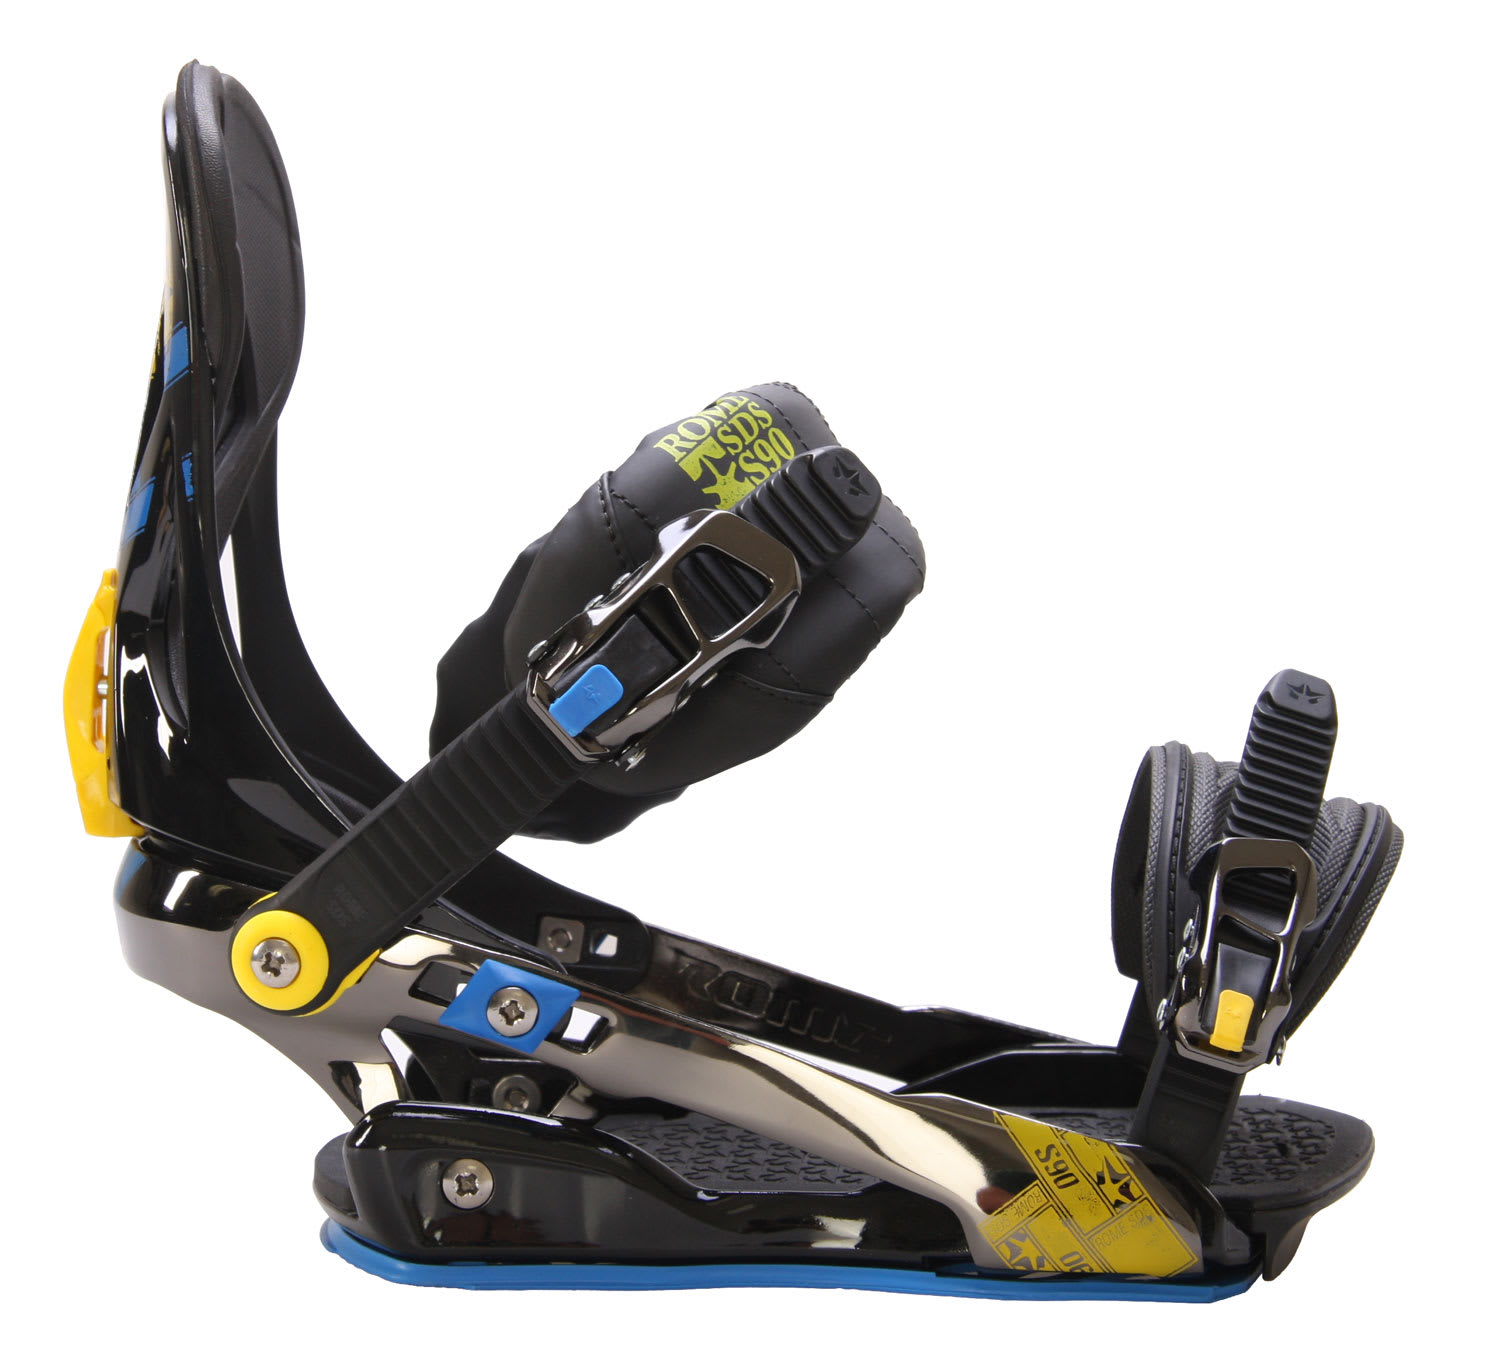 Rome S90 Mens Snowboard Bindings Blue/Yellow Sz L/XL (9-14